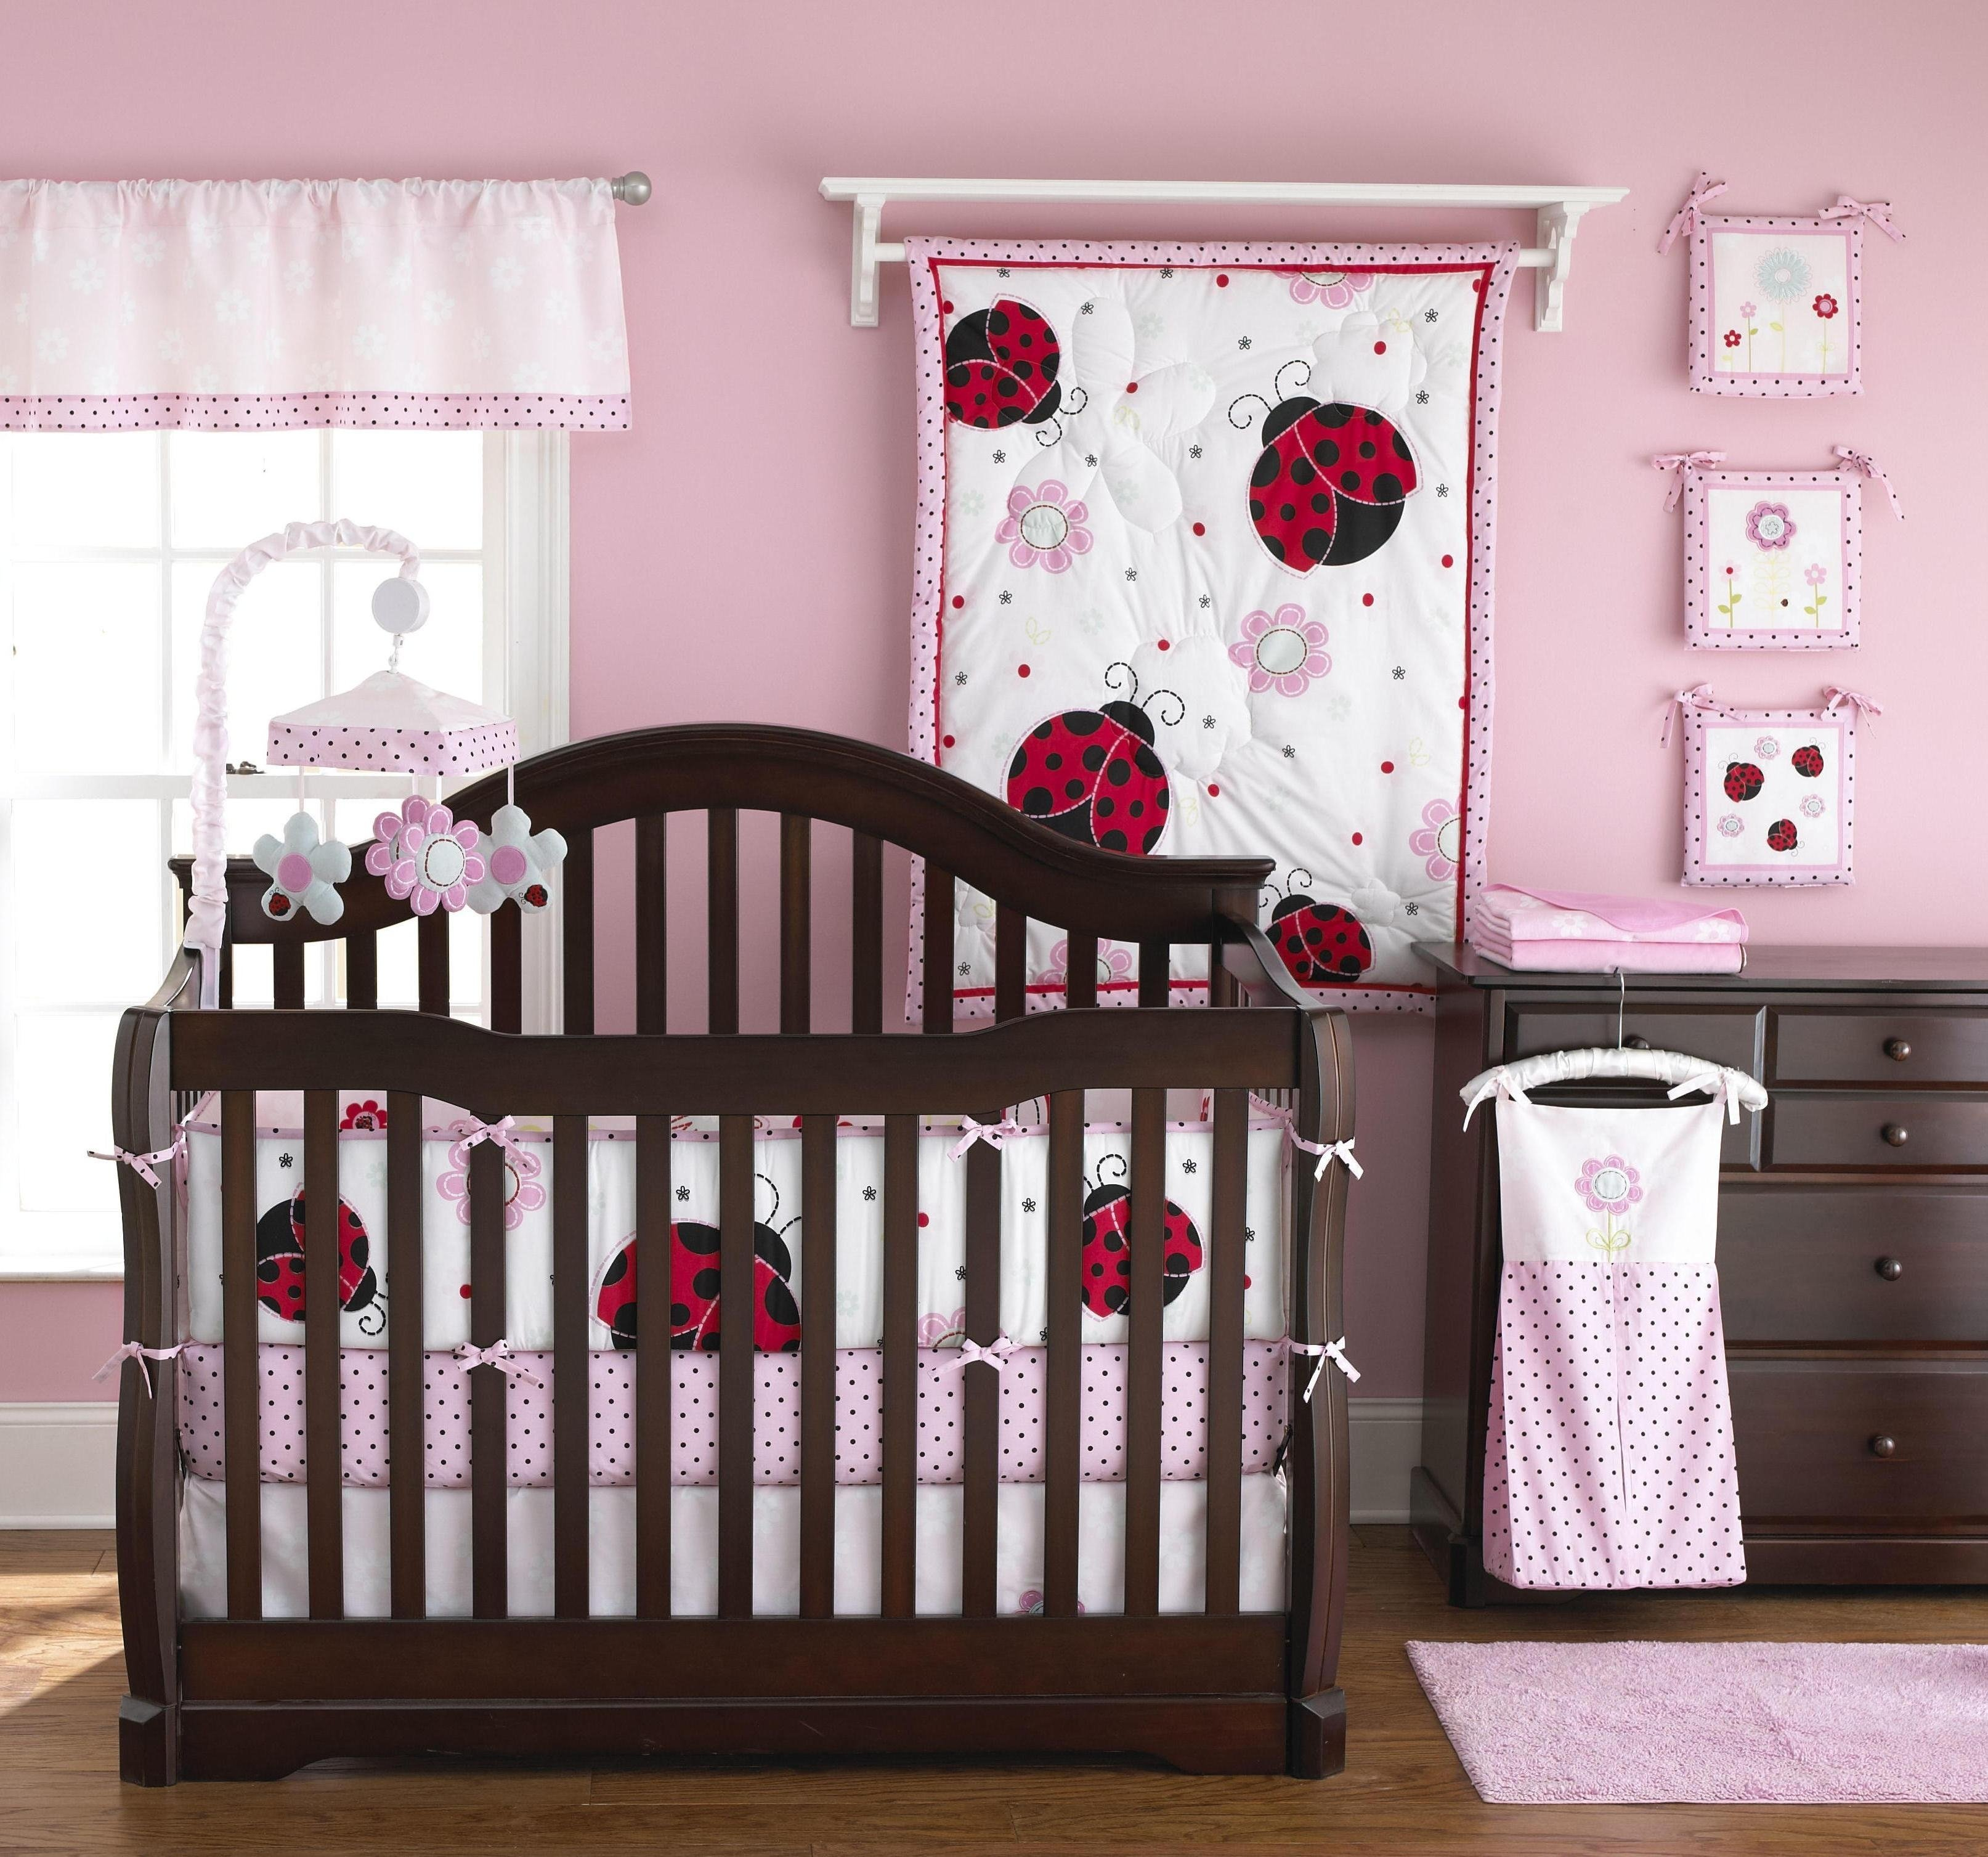 10 Lovely Pink And Brown Nursery Ideas interior dark brown wooden cradle with white bedding having red 2020